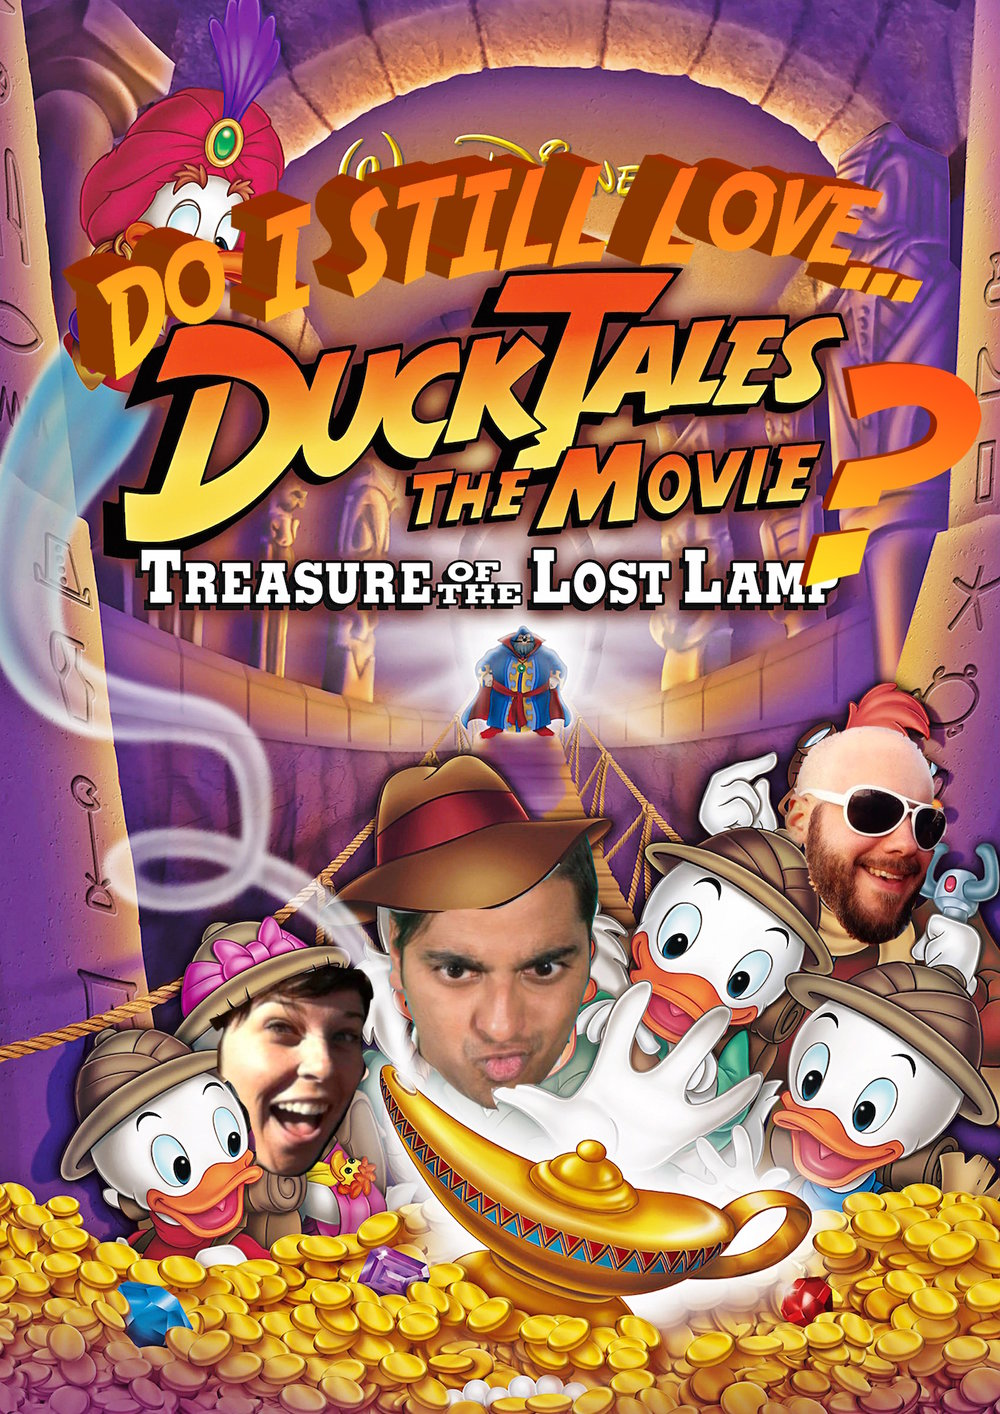 Do I Still Love Ducktales the Movie